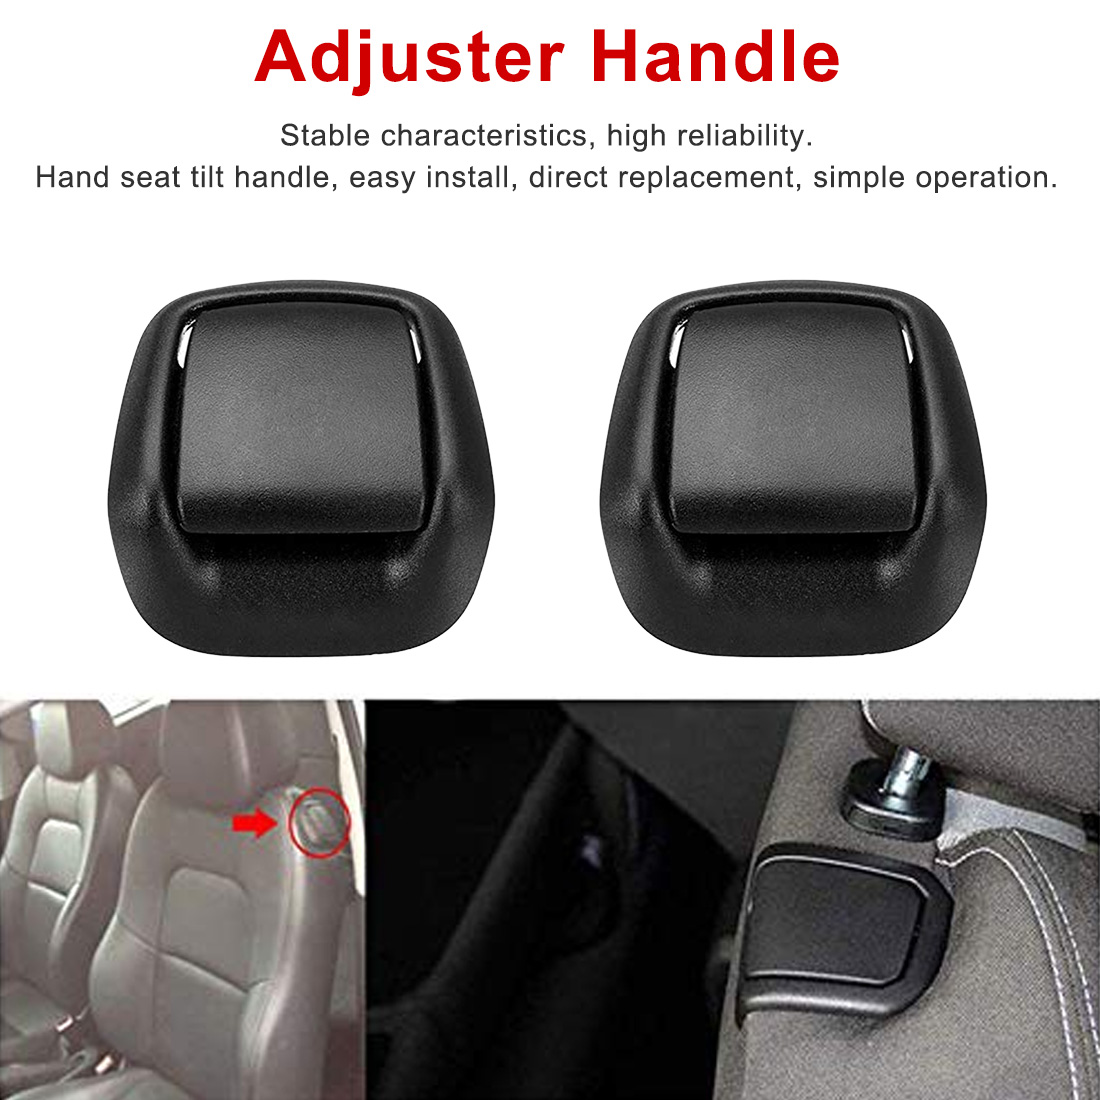 1Pair Front Left/Right Hand Seat Tilt Handle Seat Adjuster Handle Right & Left Hand Front Seat Tilt Handles Car Seat Accessories